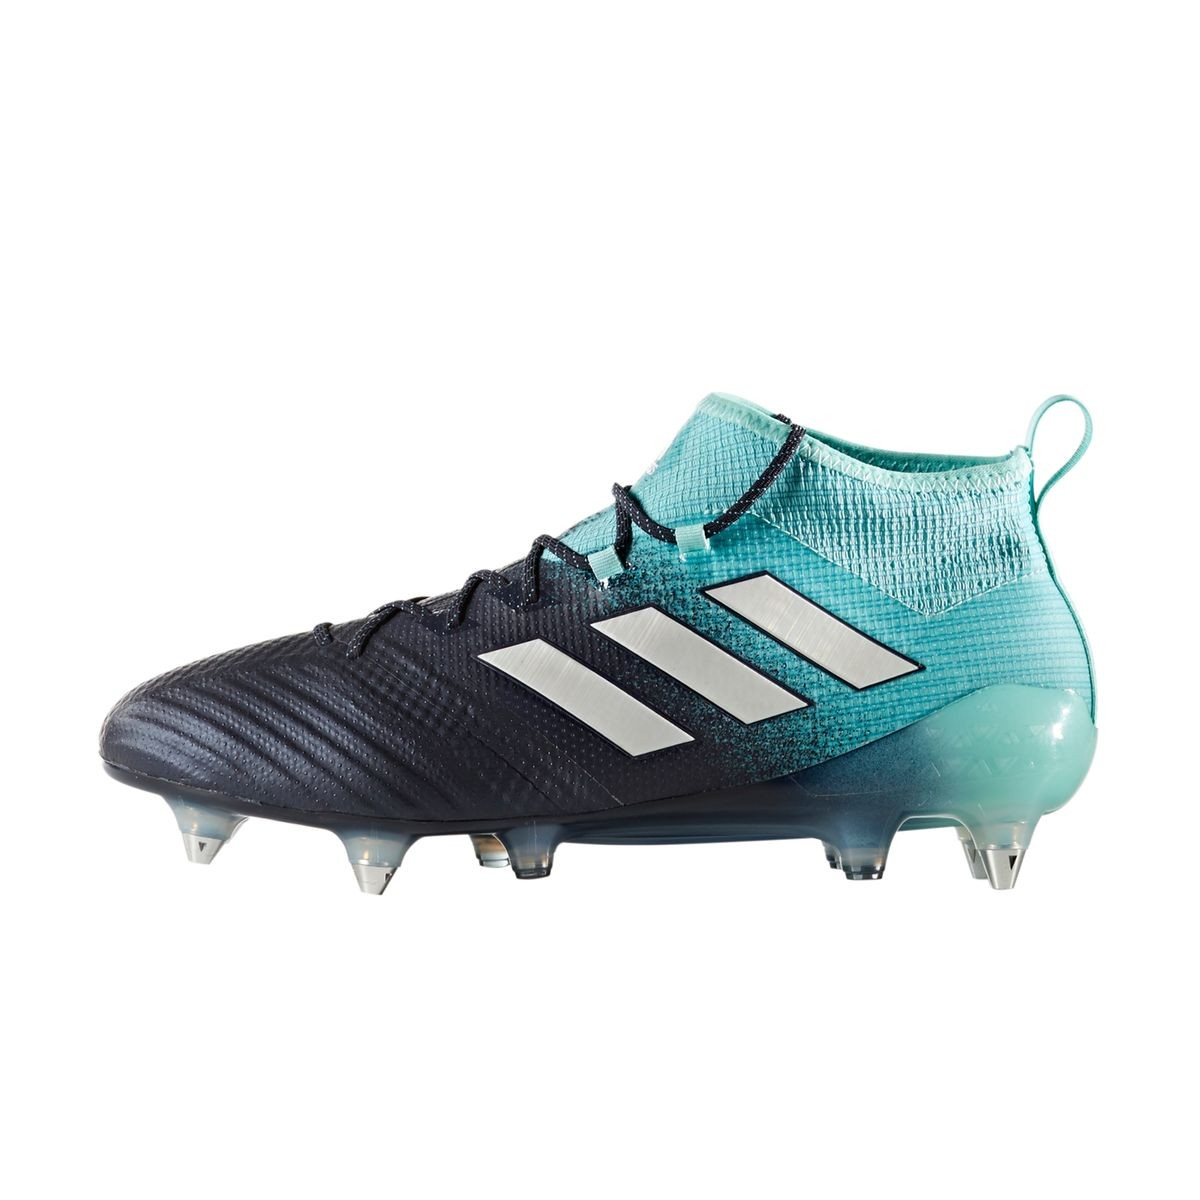 Chaussures Football Adidas Ace 17.1 Sg Bleu Taille : 43 1